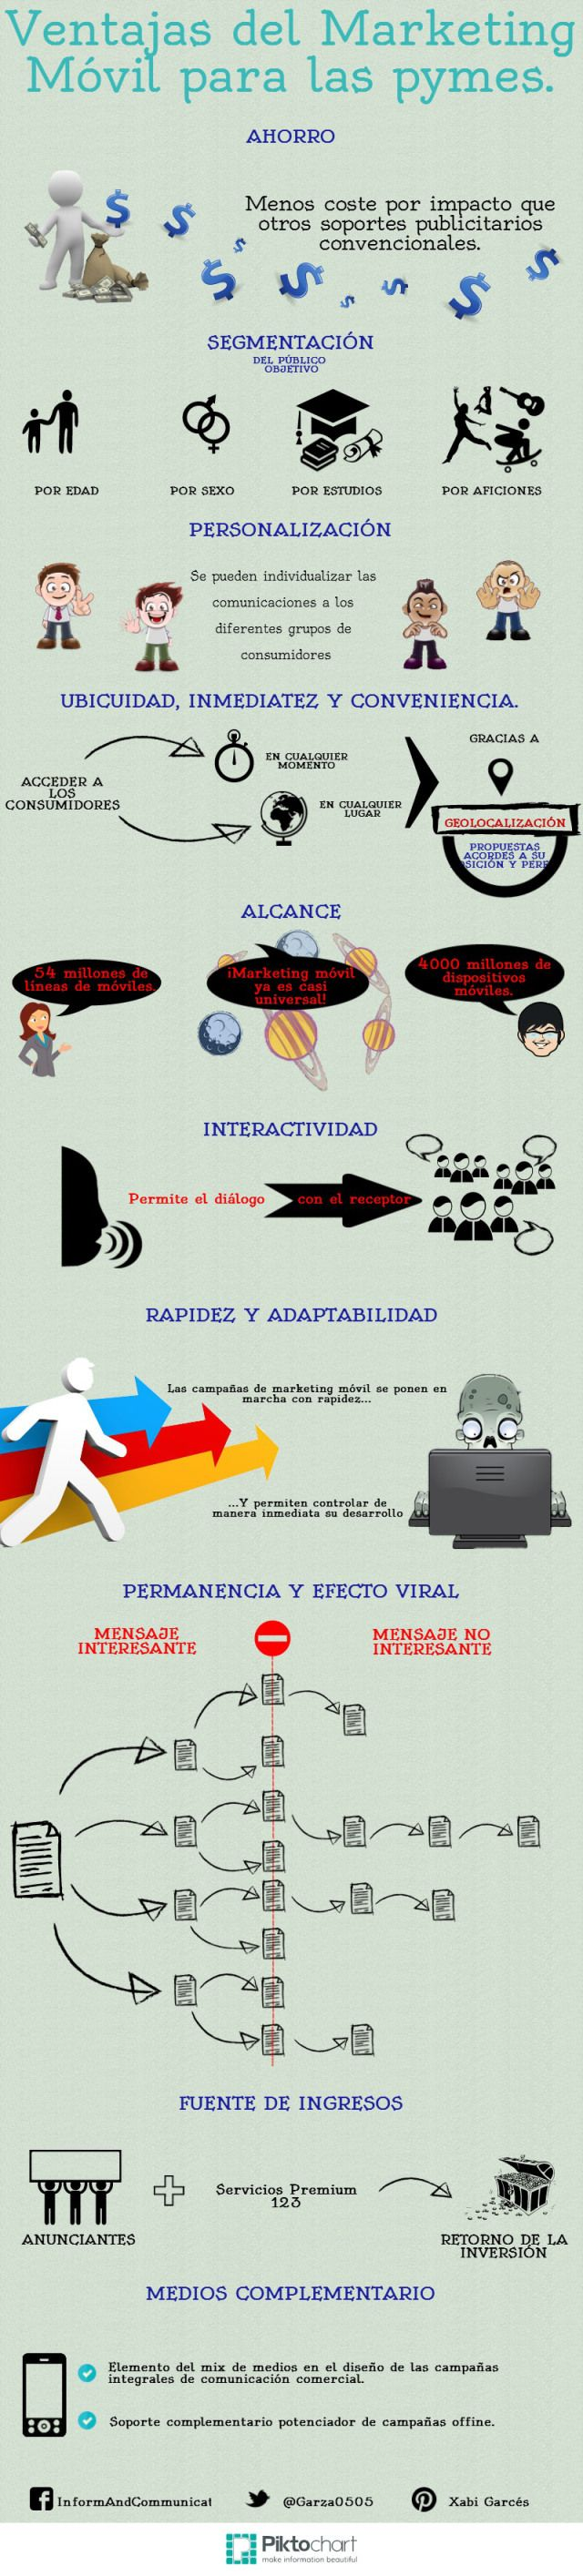 Ventajas del marketing móvil para pymes #infografia #infographic #marketing